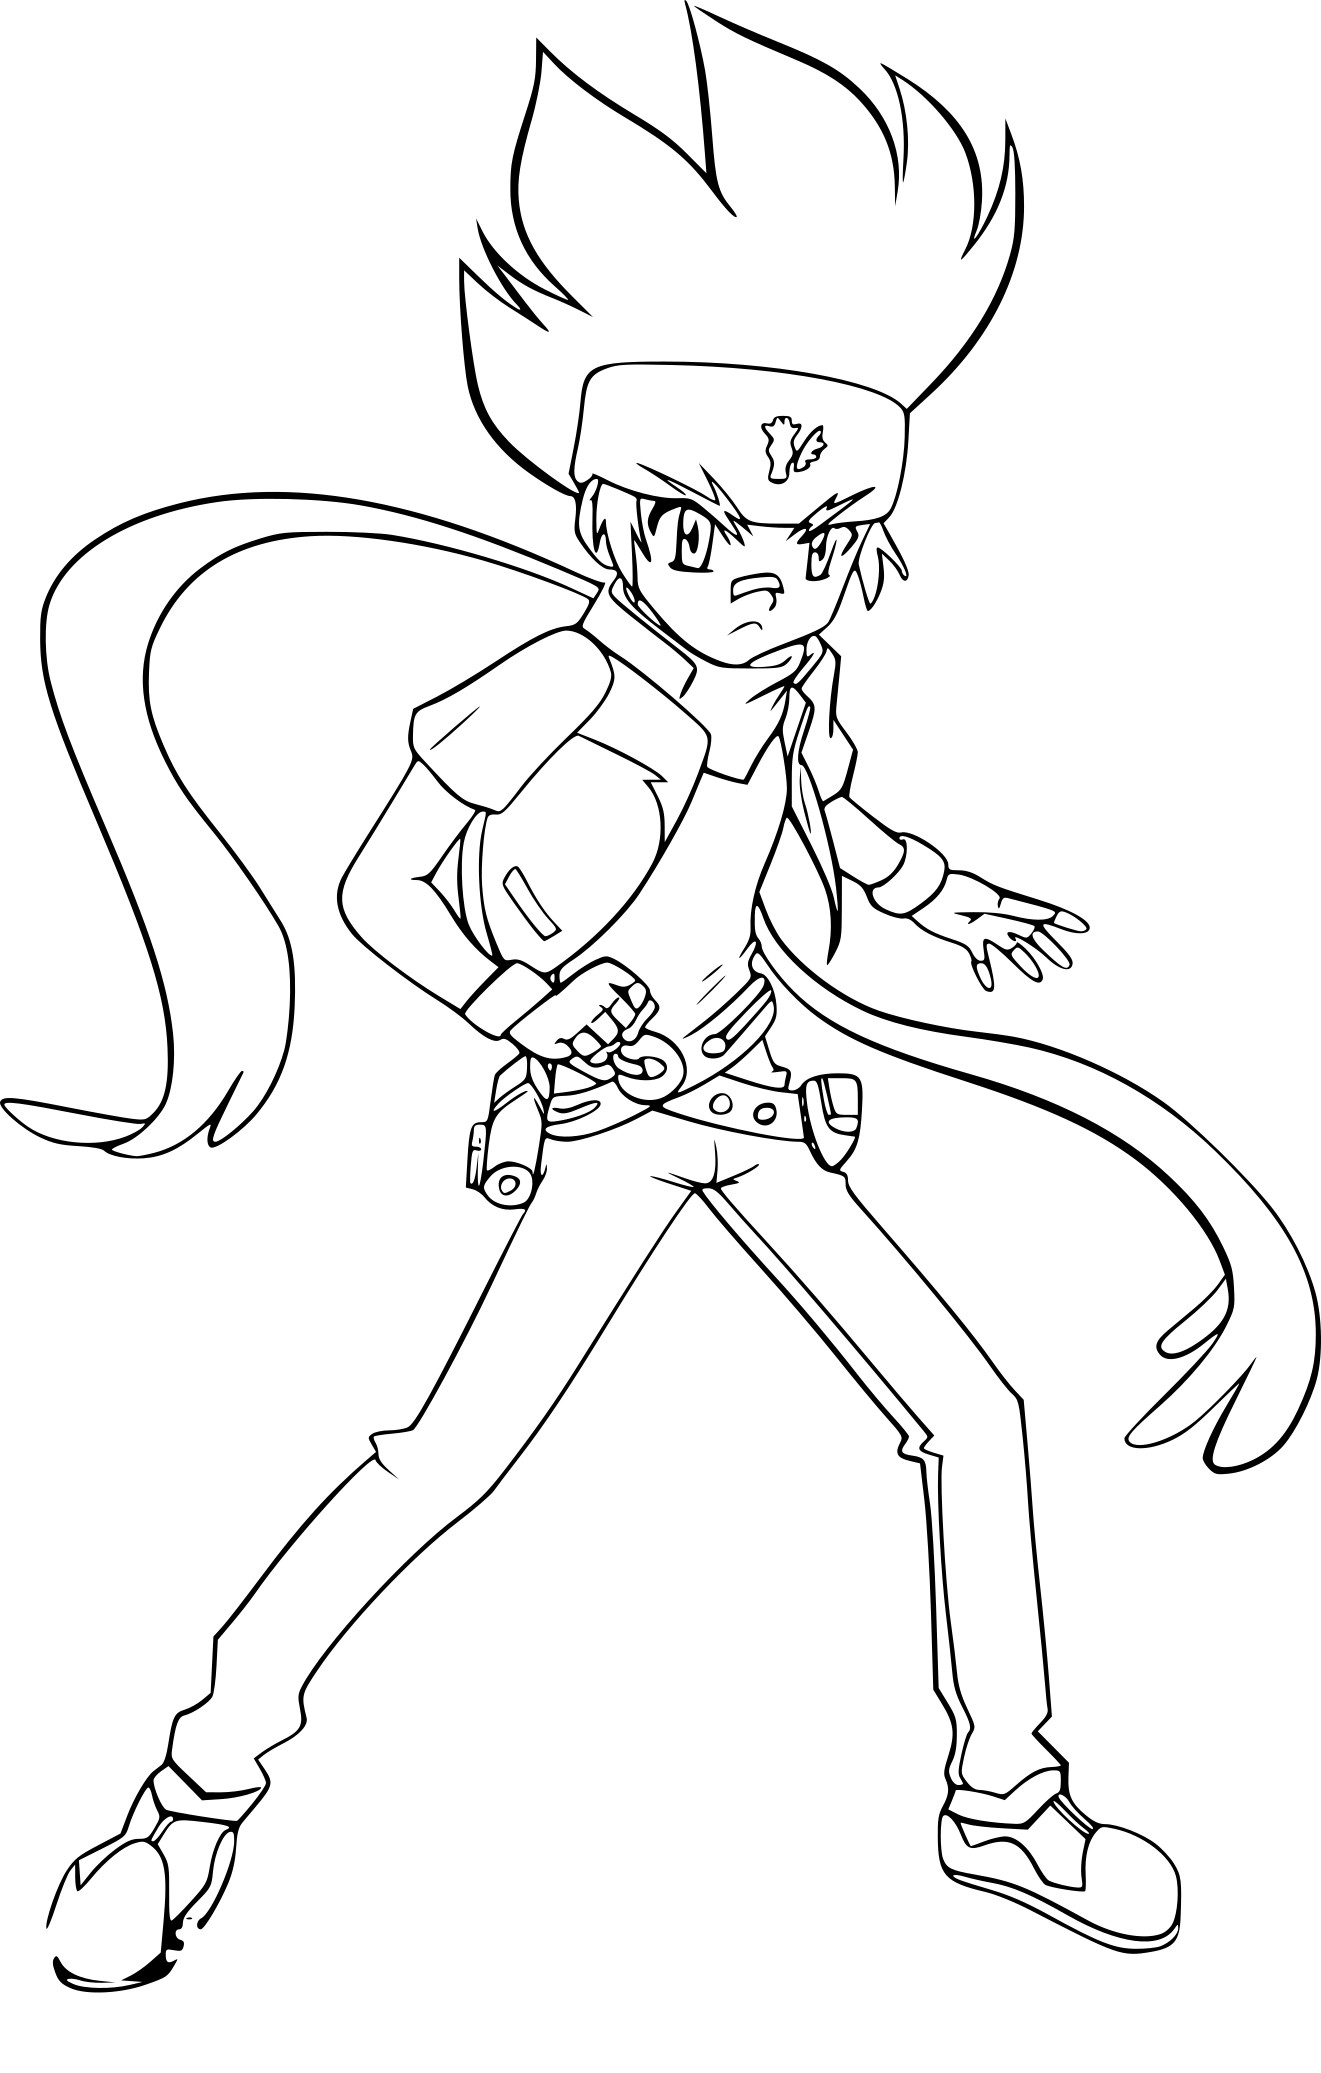 Coloriage Beyblade Ginga Imprimer Sur Coloriages Info